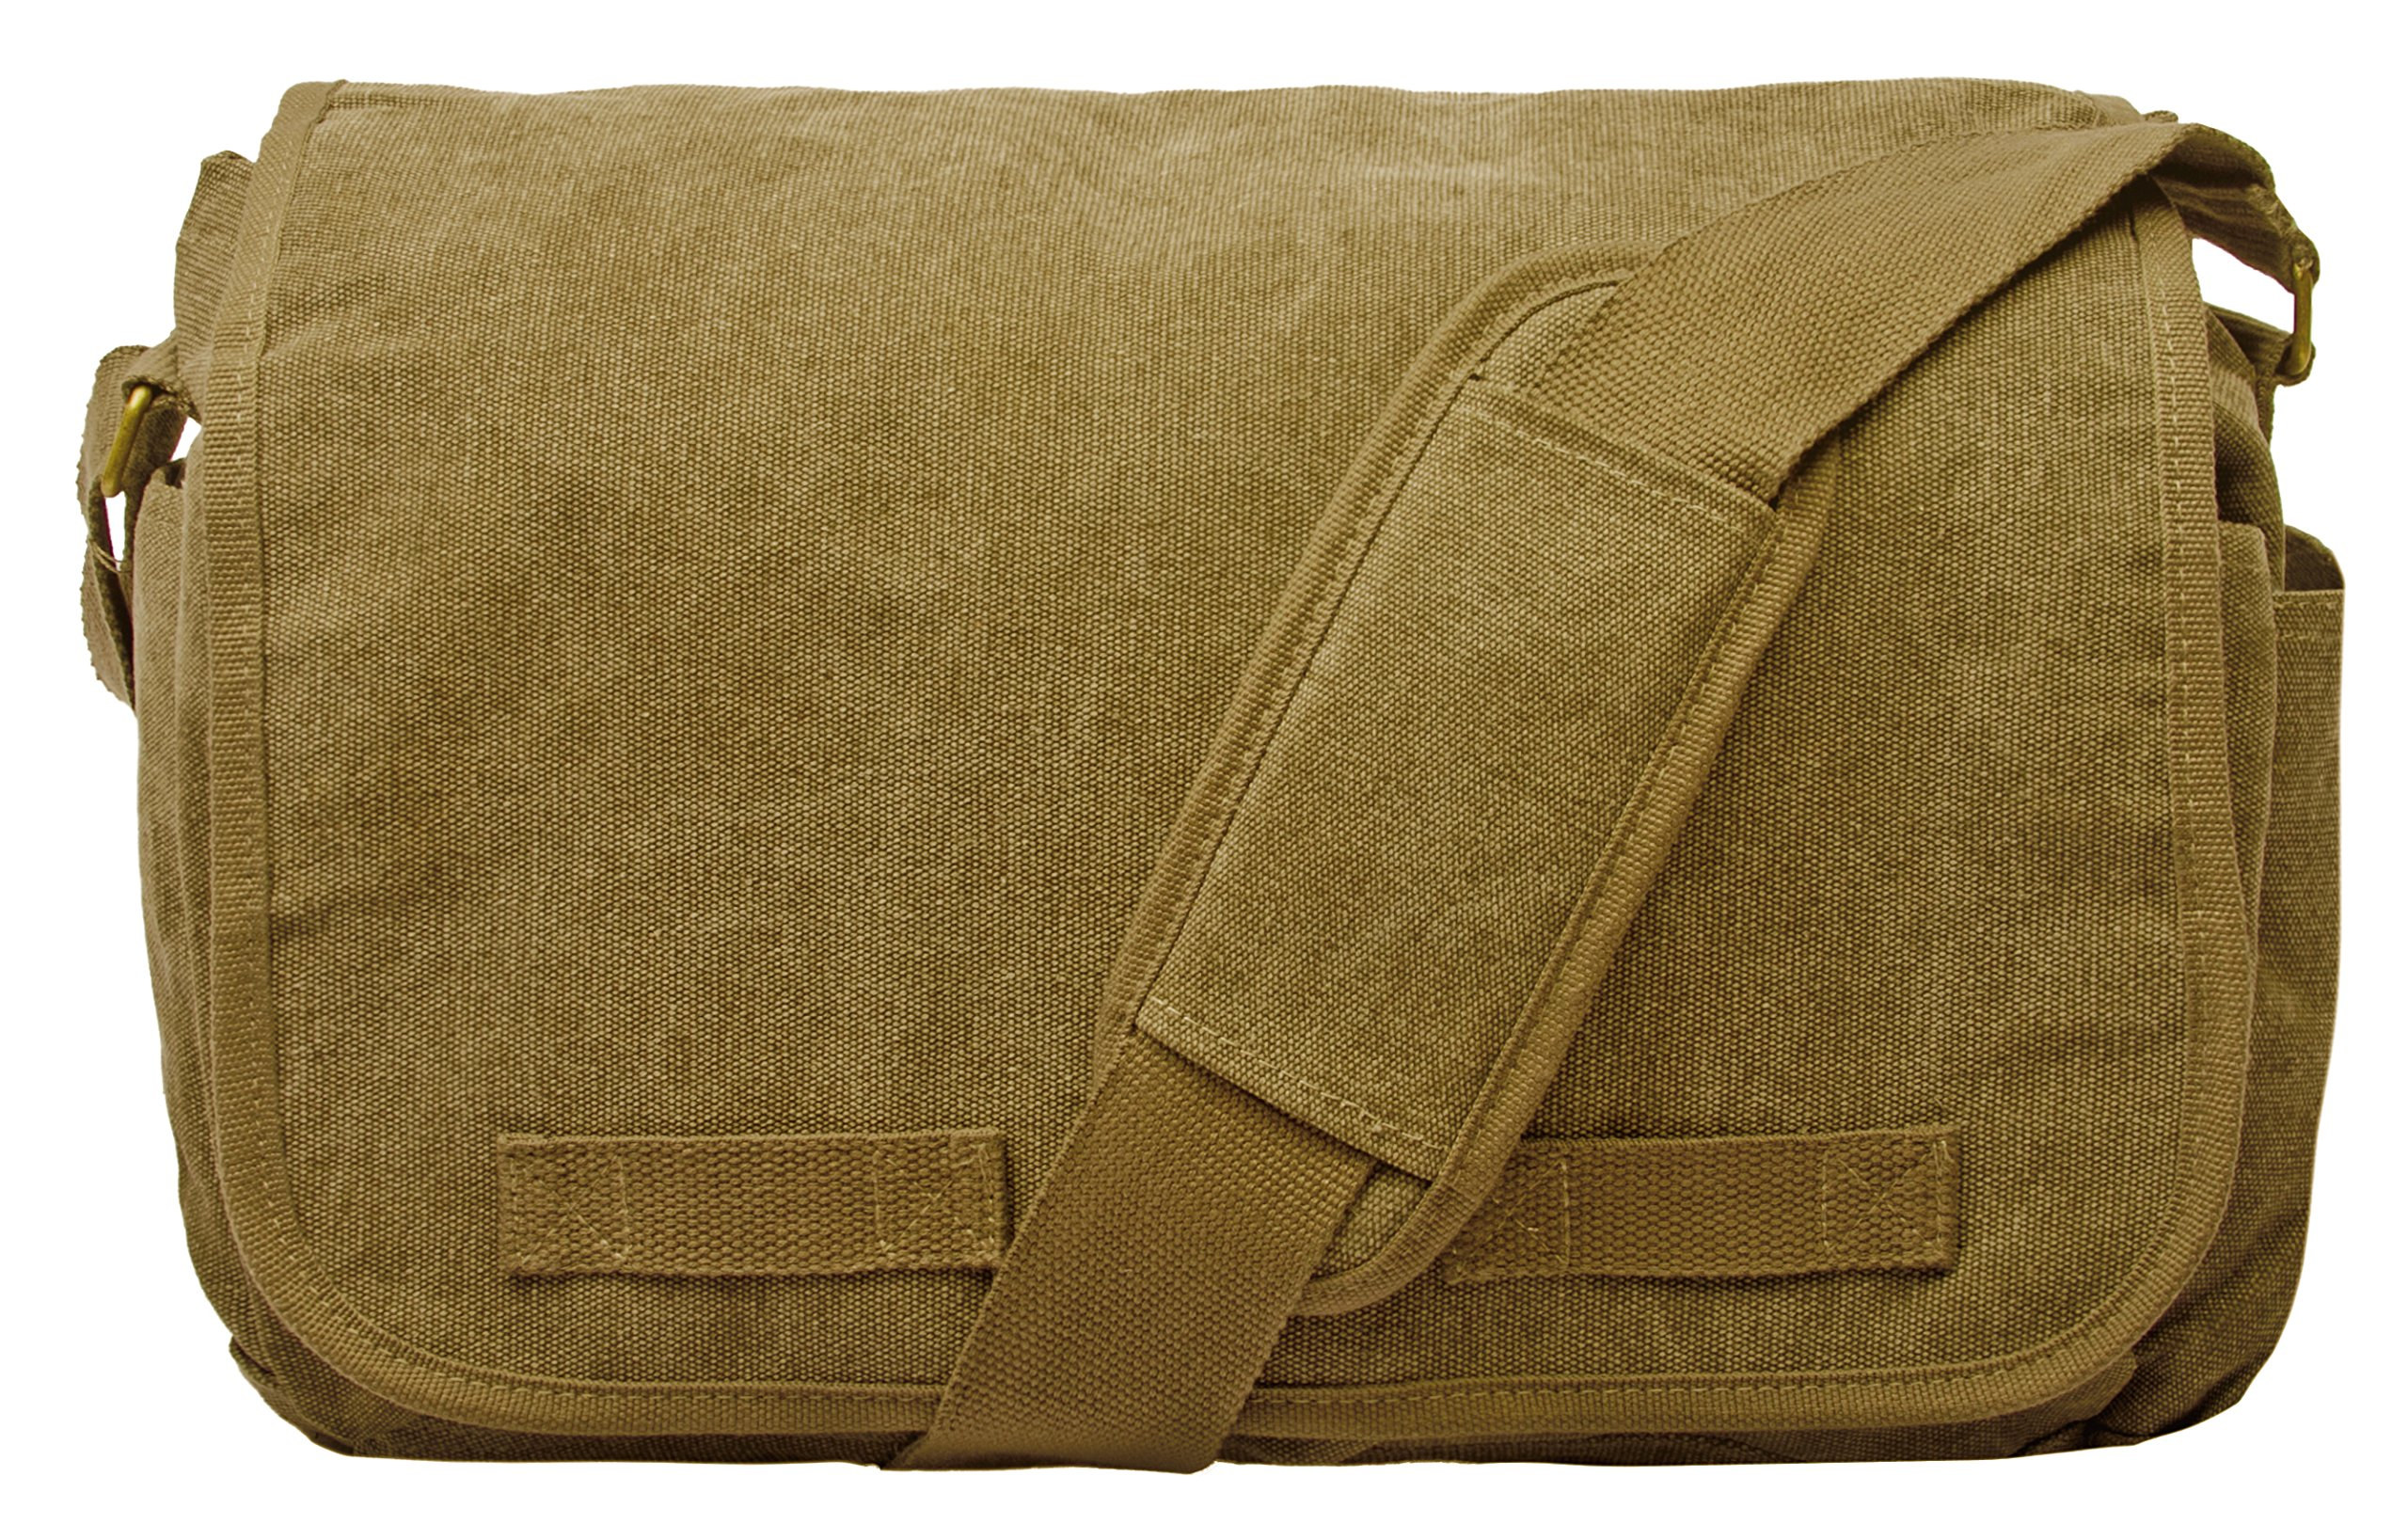 Sweetbriar Classic Messenger Bag - Vintage Canvas Shoulder Bag for All-Purpose Use by Sweetbriar (Image #1)